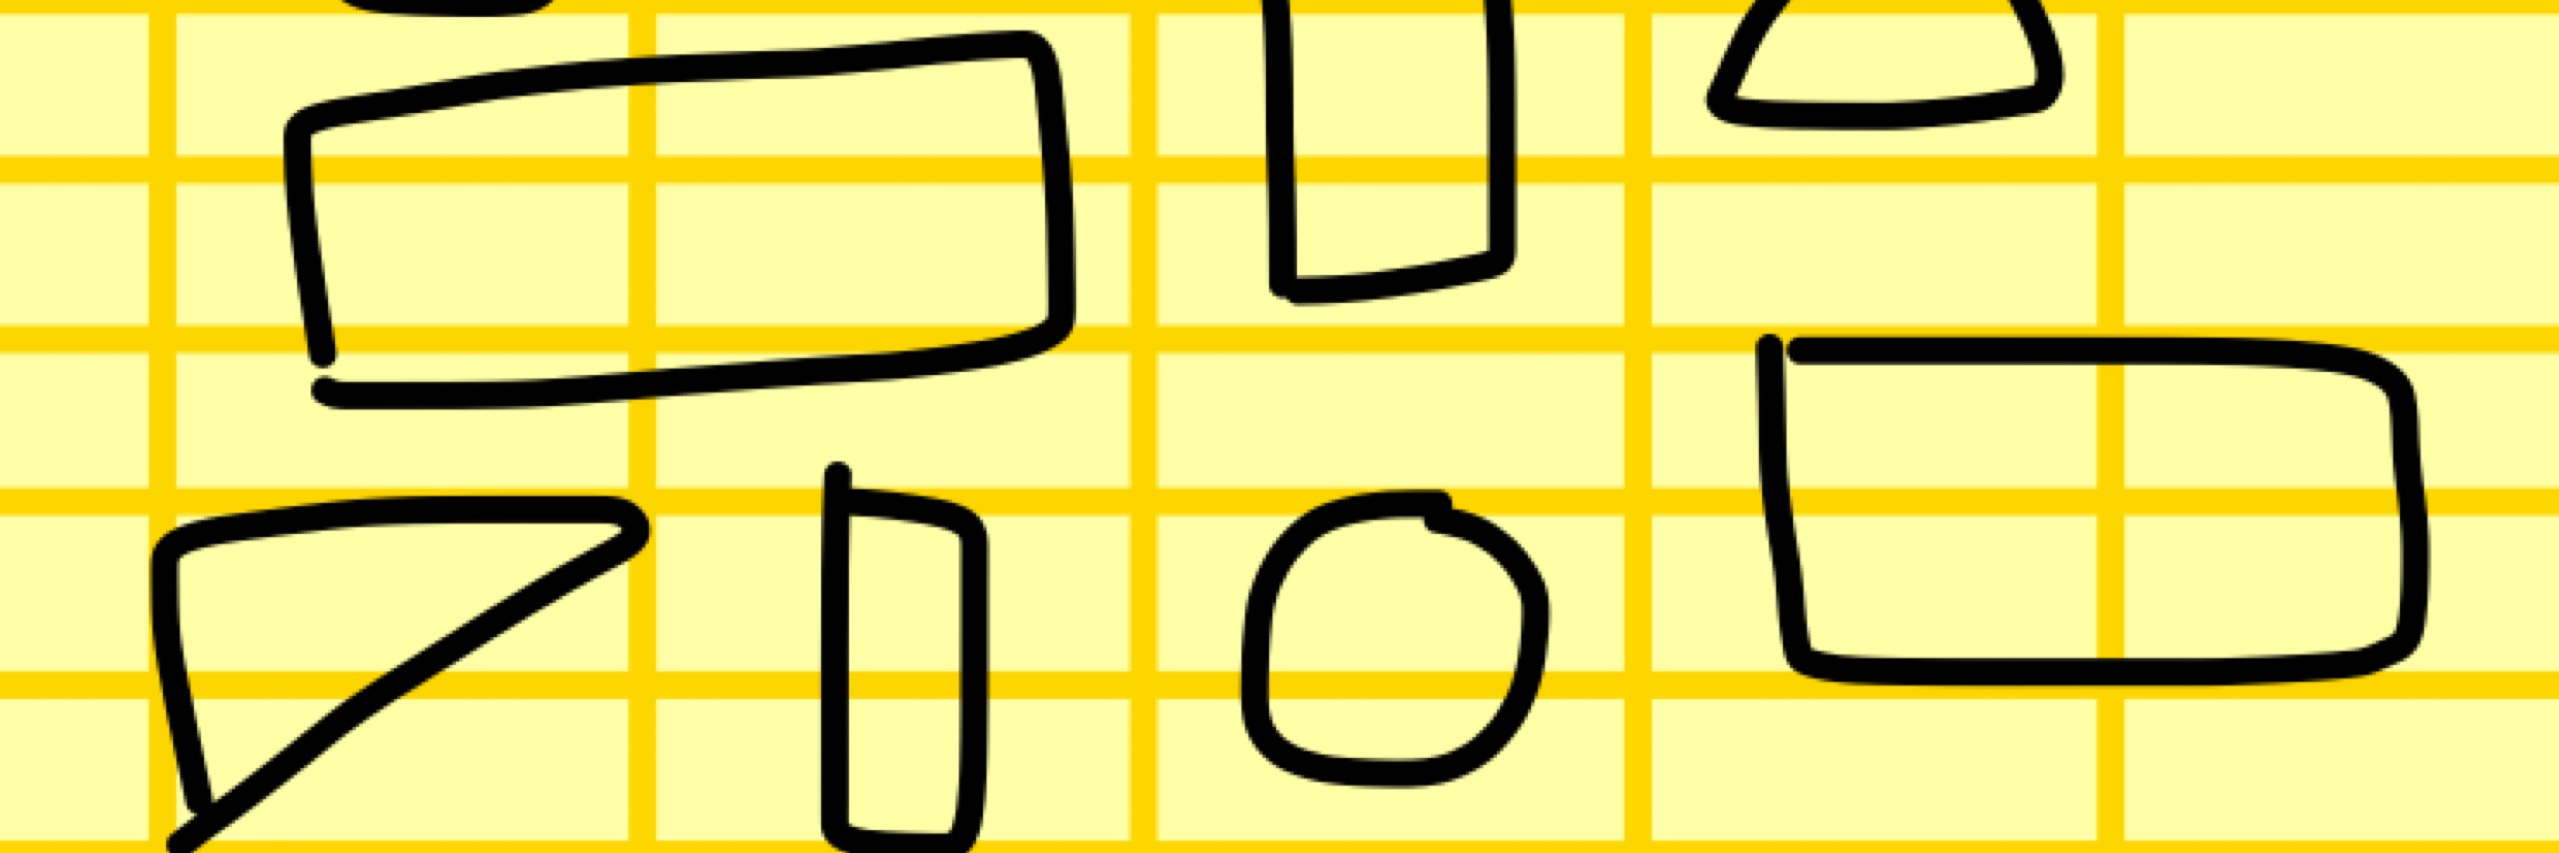 Master css grid with this simple step preethi sam the answer is a blueprint im not kidding this is the single best thing you could include in your grid workflow if you got one thatll make you master malvernweather Gallery